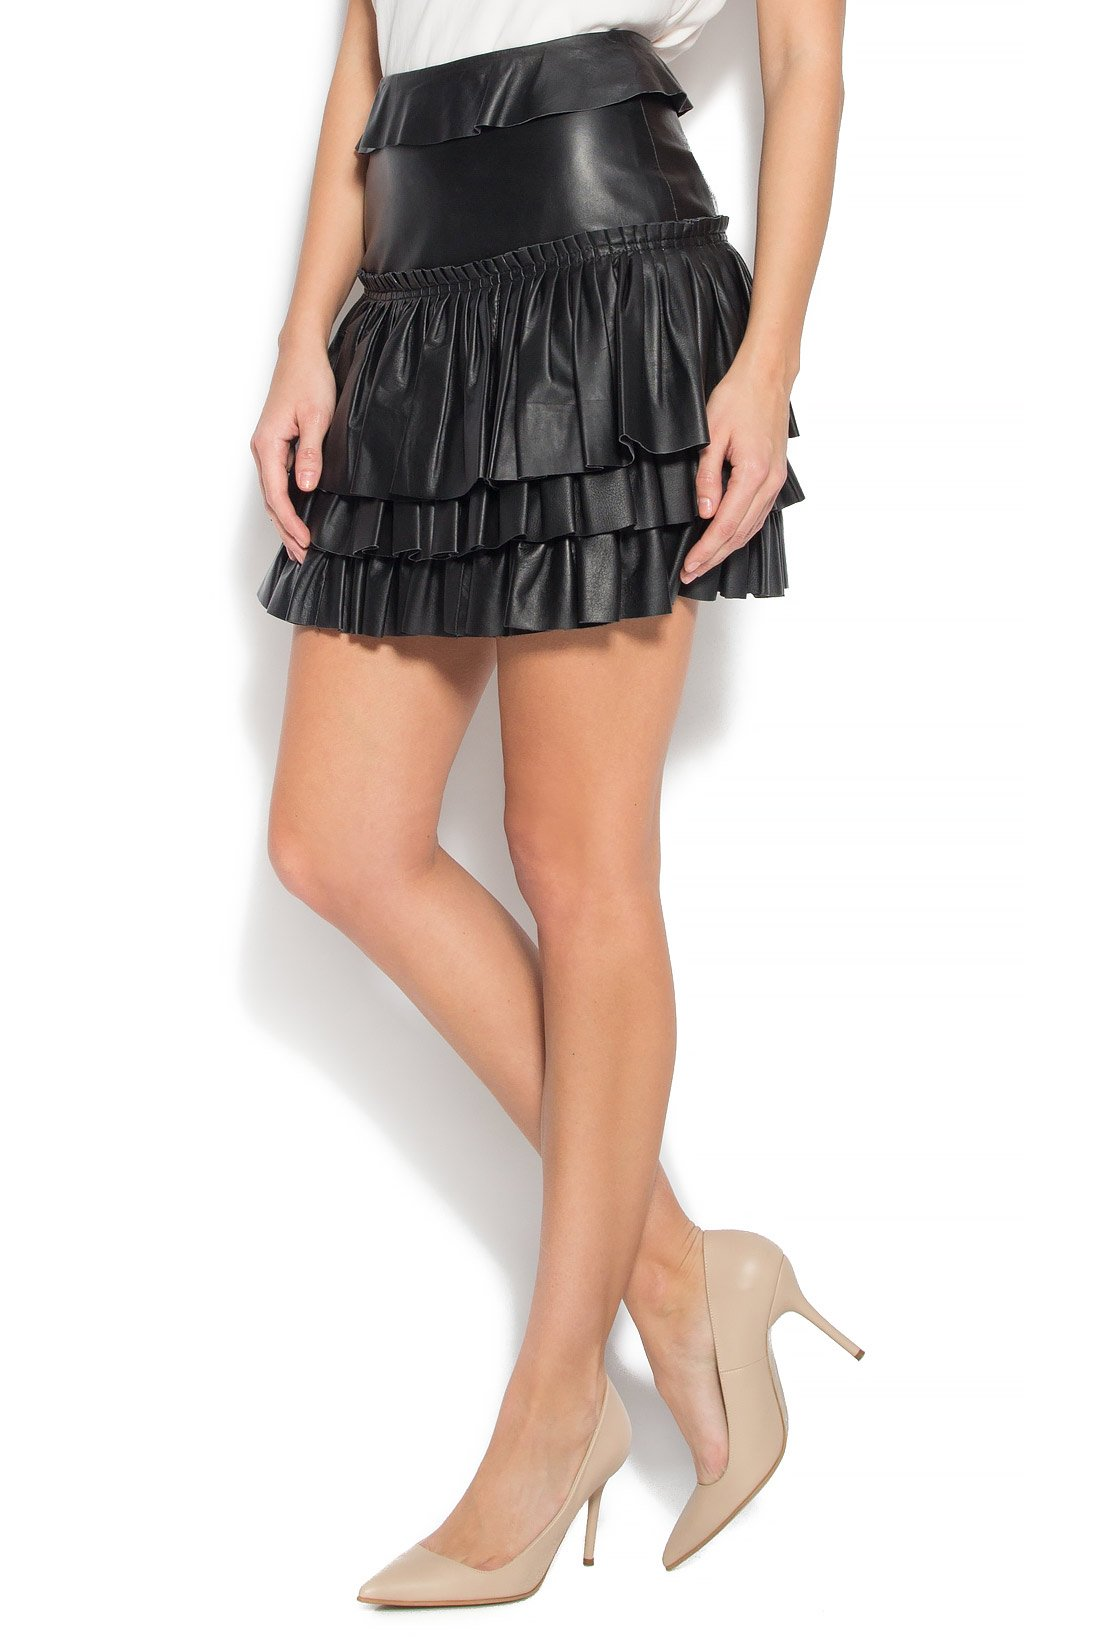 A faux leather skirt with a wrapped ruffle hem. Interior elastic waistband for a secure and comfortable fit. Hidden back zipper with hook-and-eye closure.